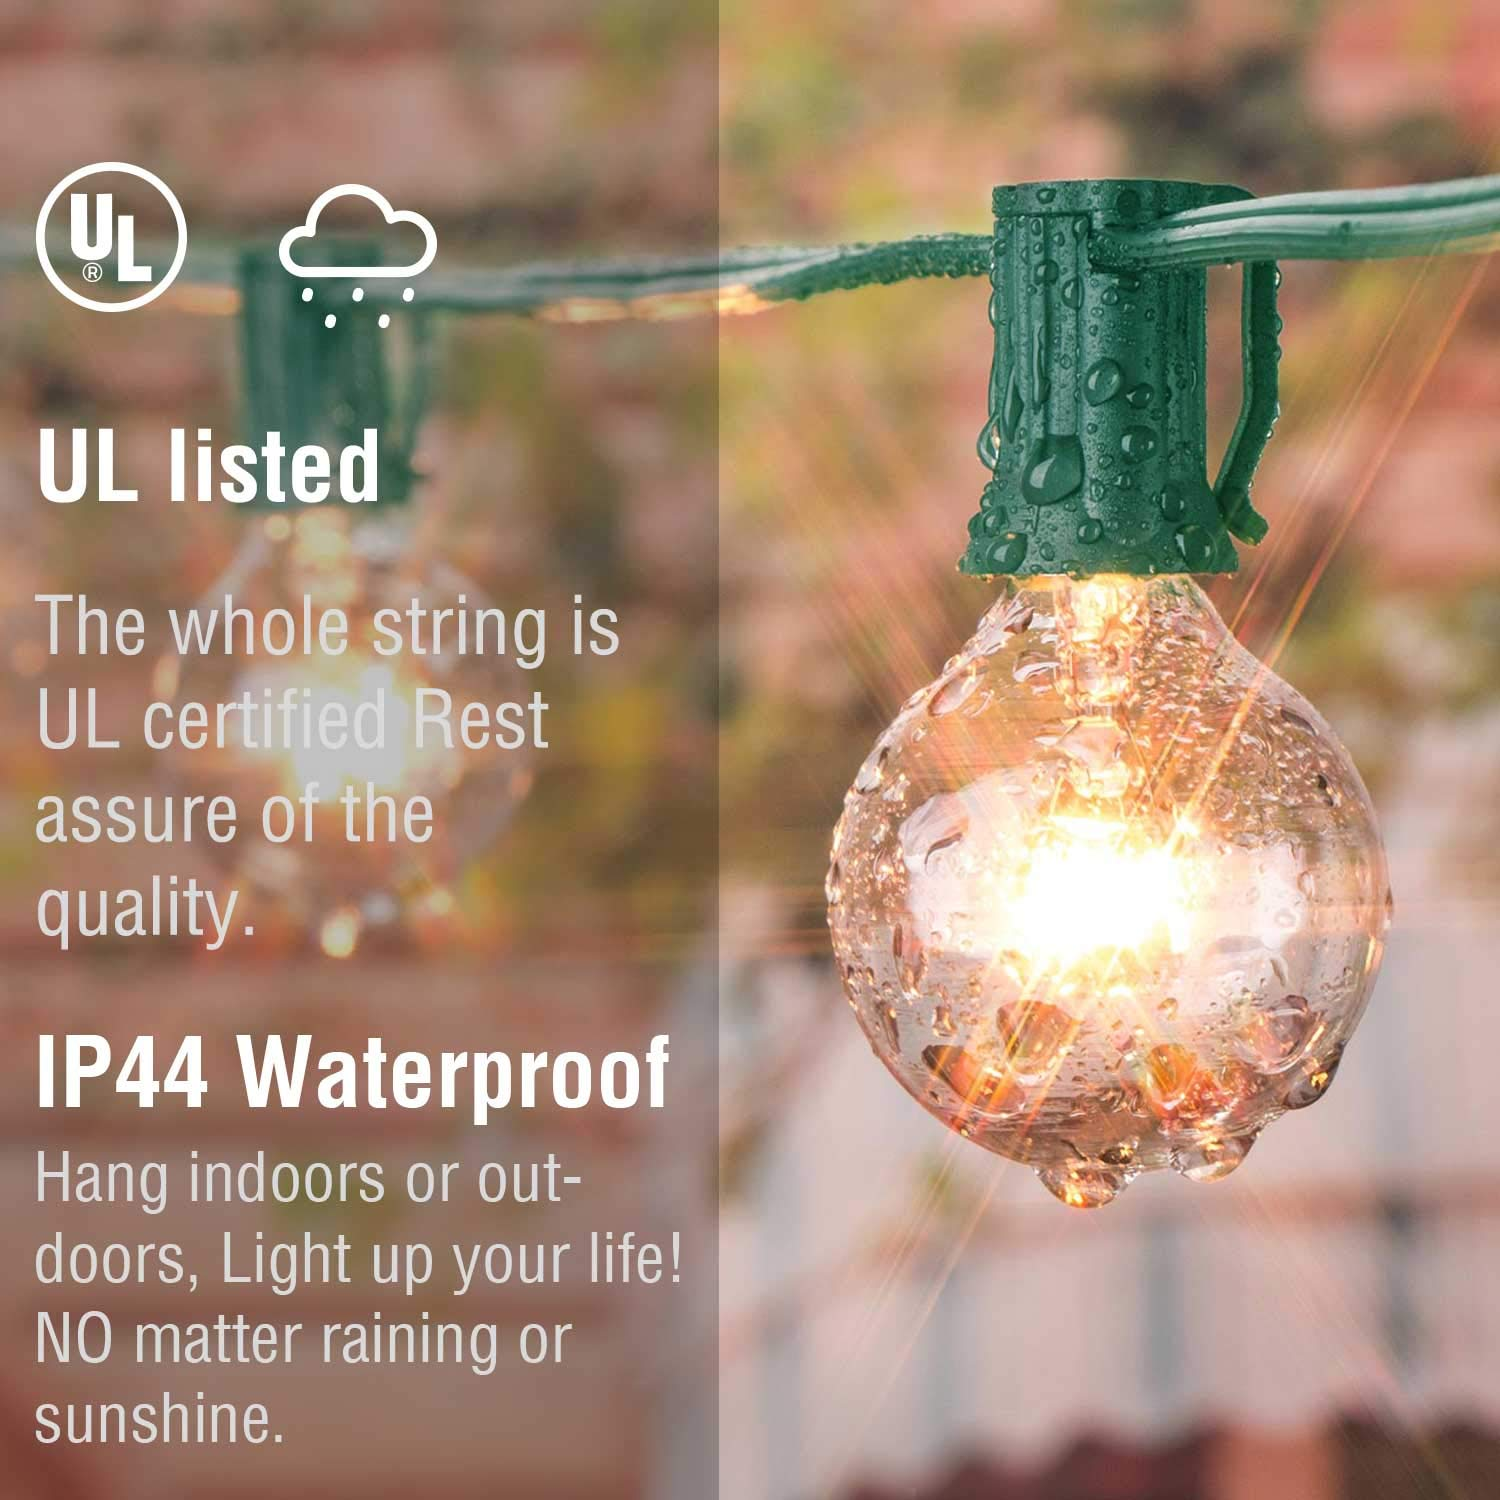 50Ft G40 Globe String Lights with Bulbs Outdoor Market Lights for Indoor/Outdoor Commercial Decor Green Wire by Brightown (Image #3)